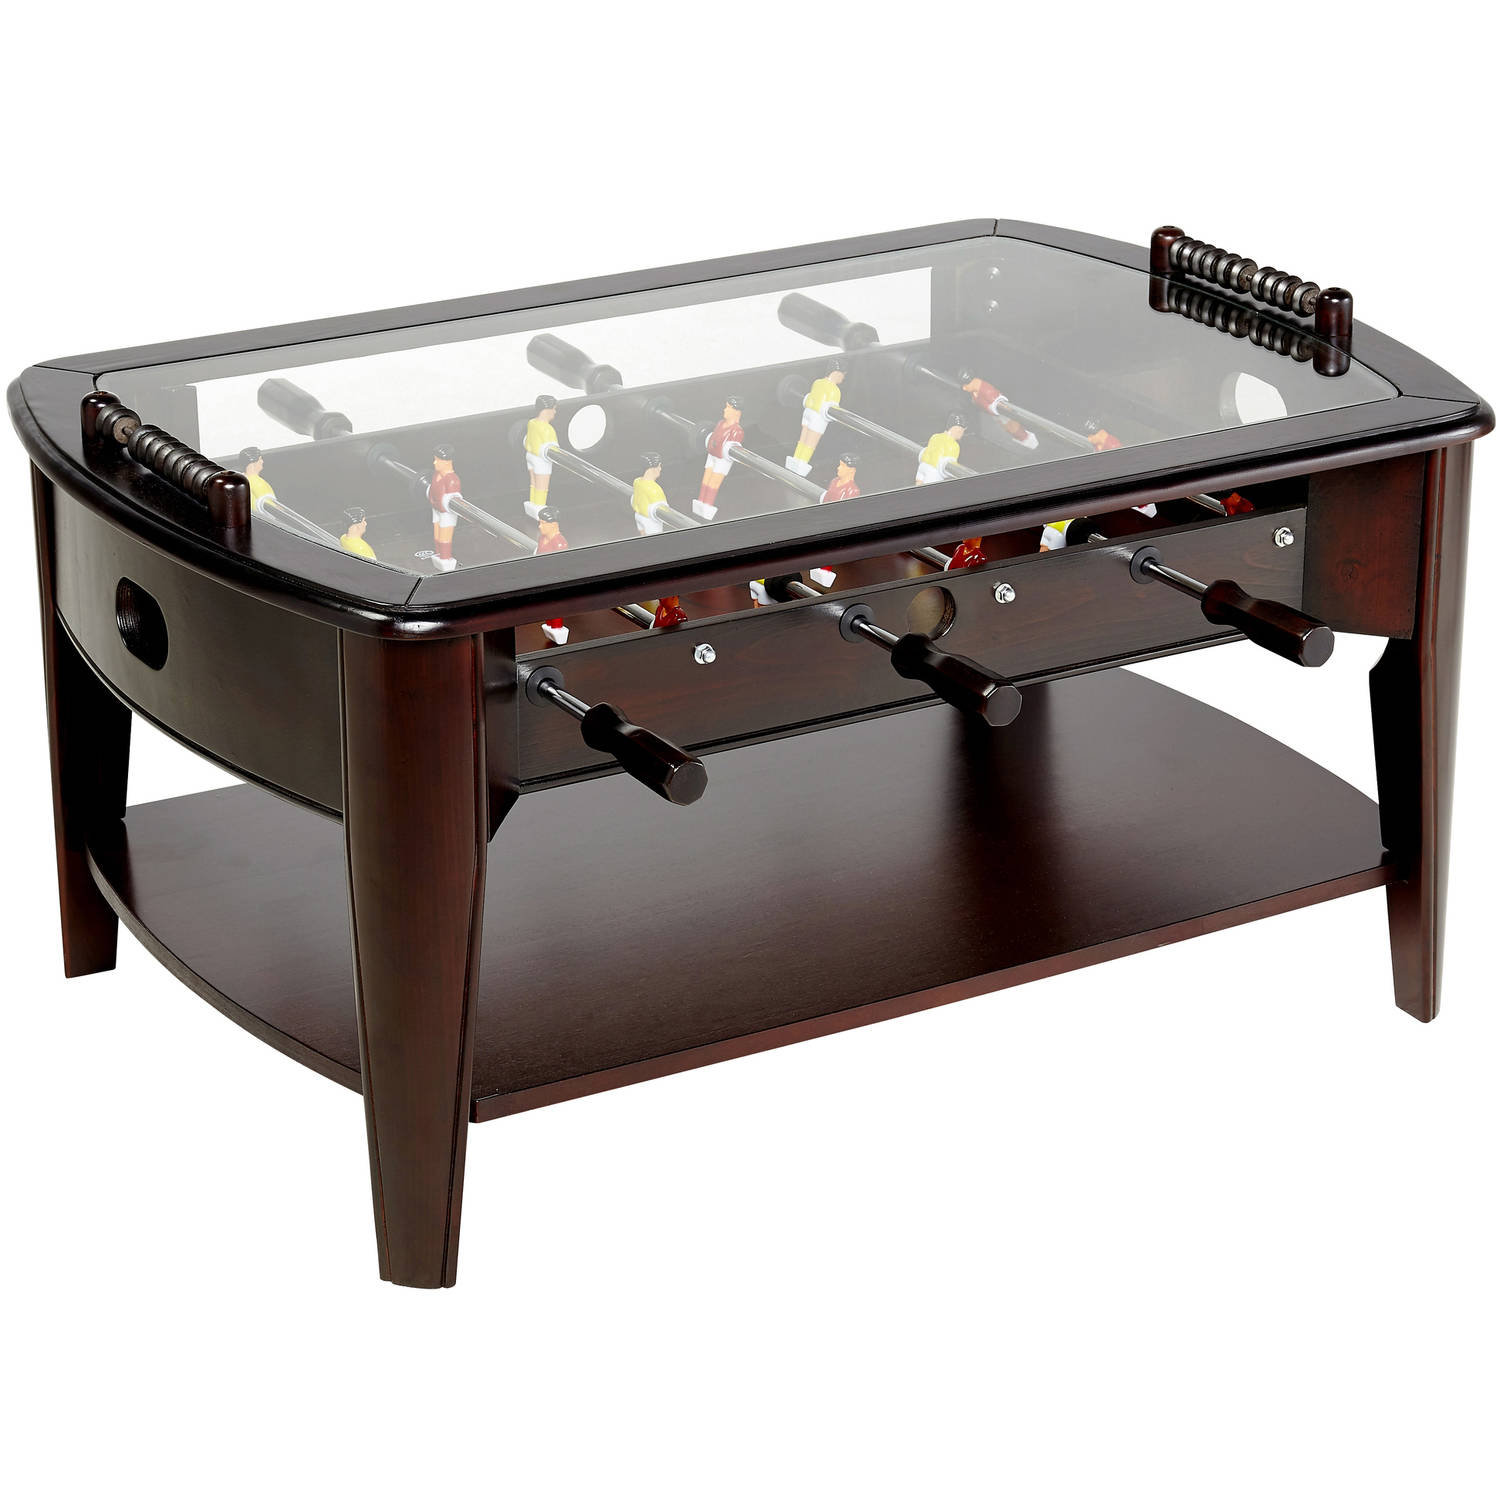 Barrington 42 Inch Wooden Foosball Coffee Table   Walmart.com